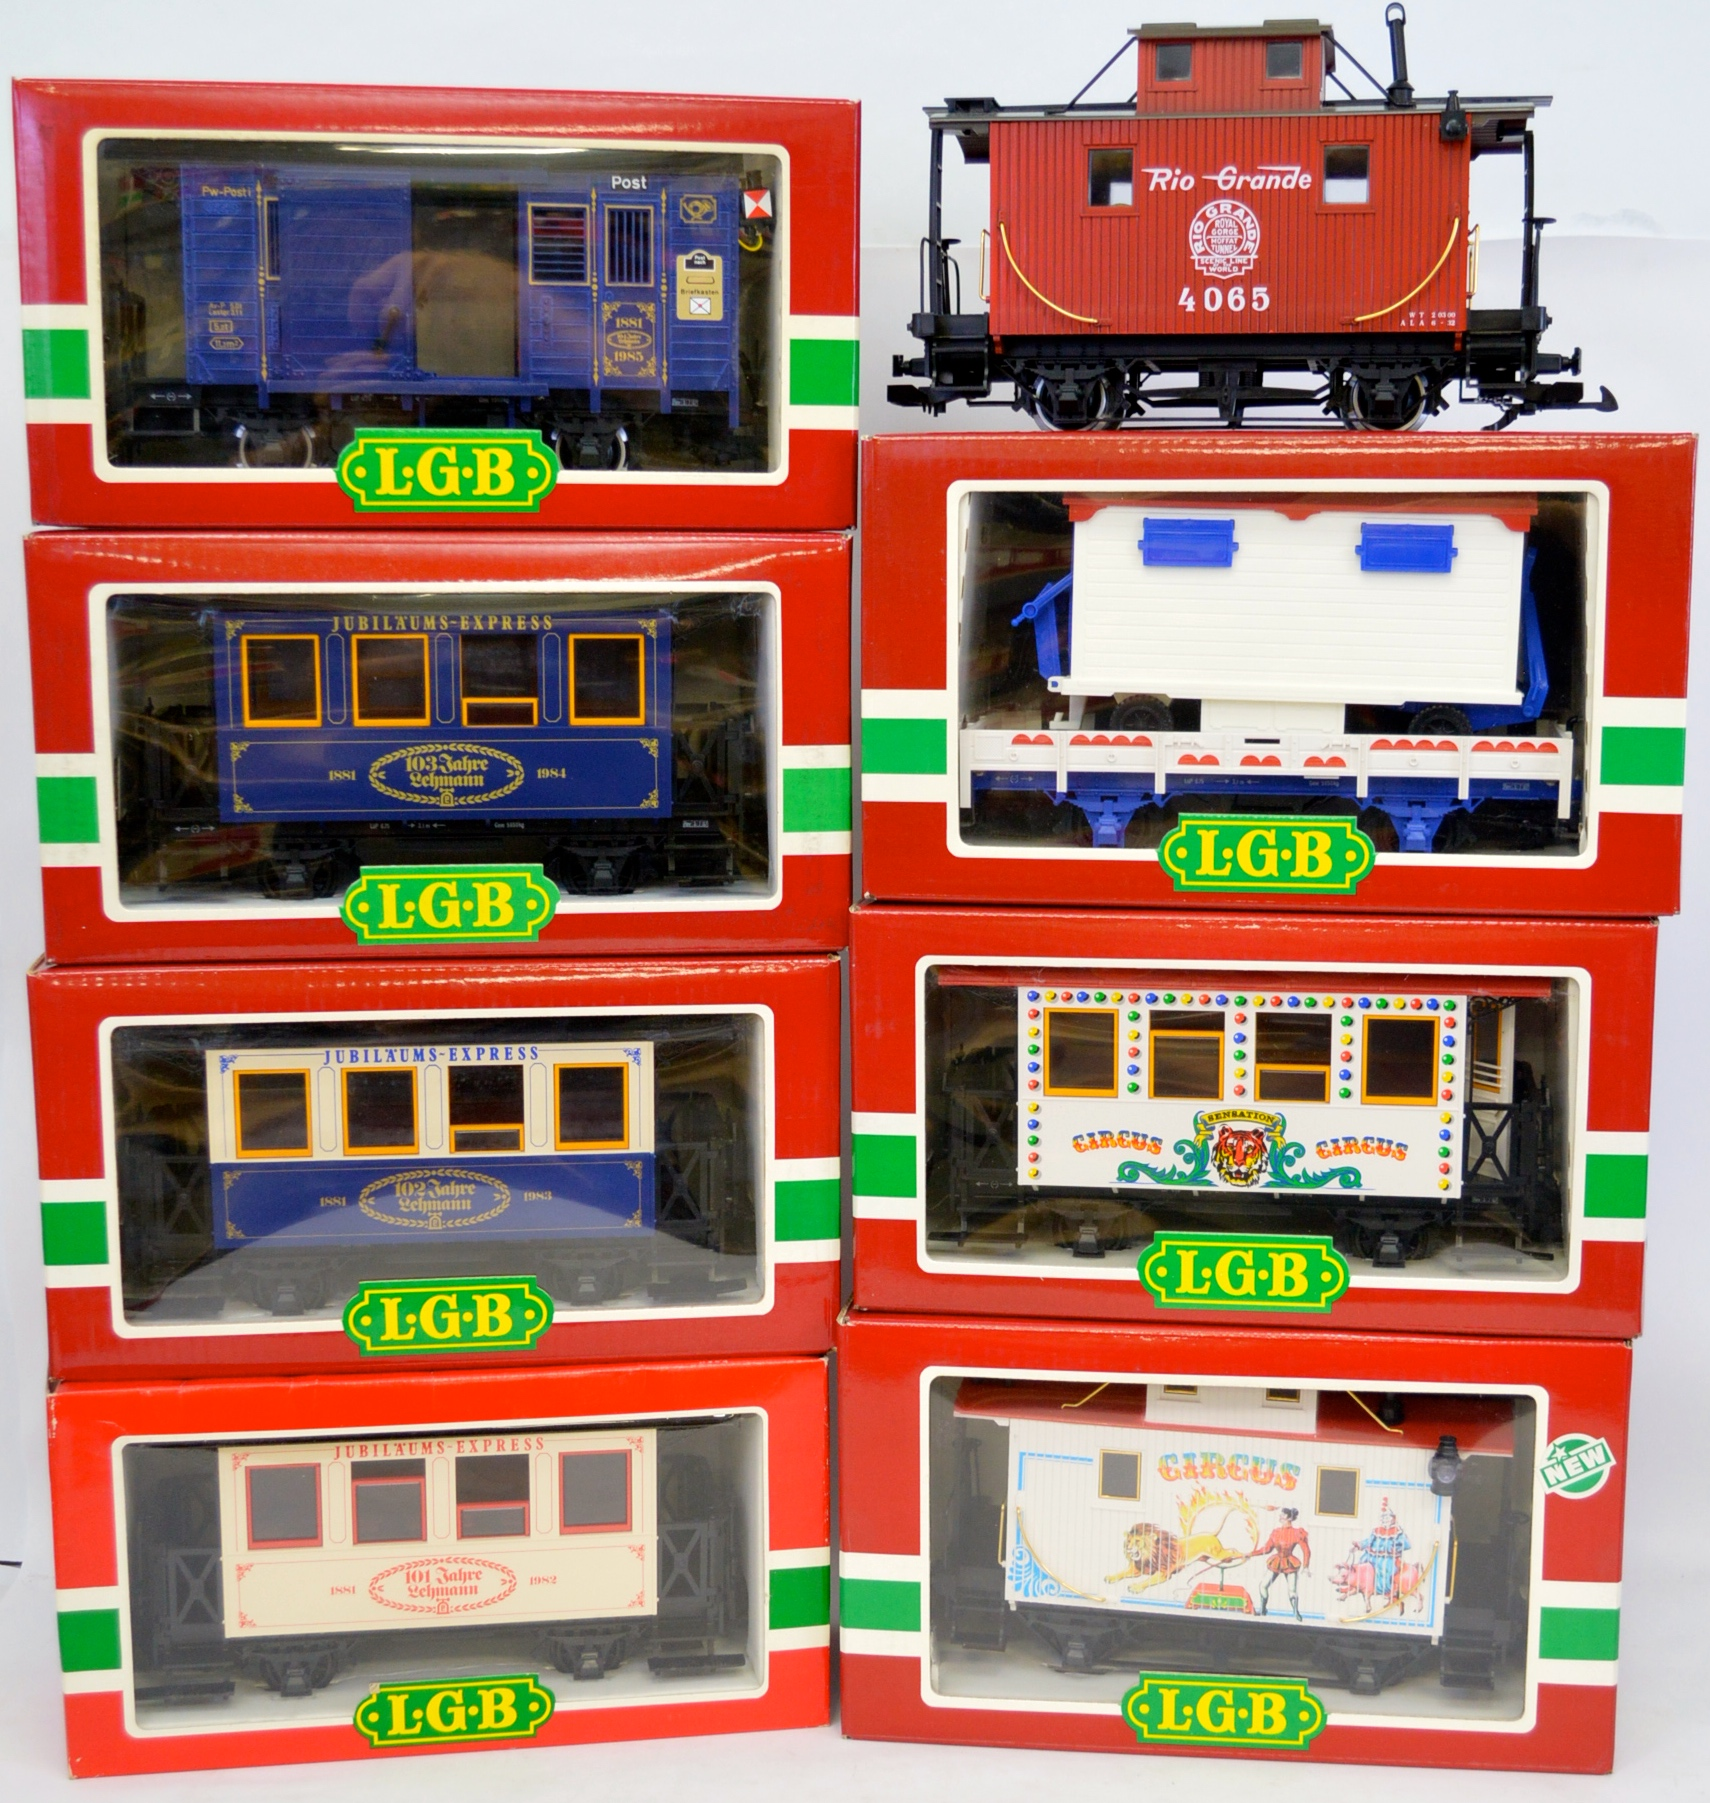 LGB G Scale Lionel O Gauge Trains & Accessories And More